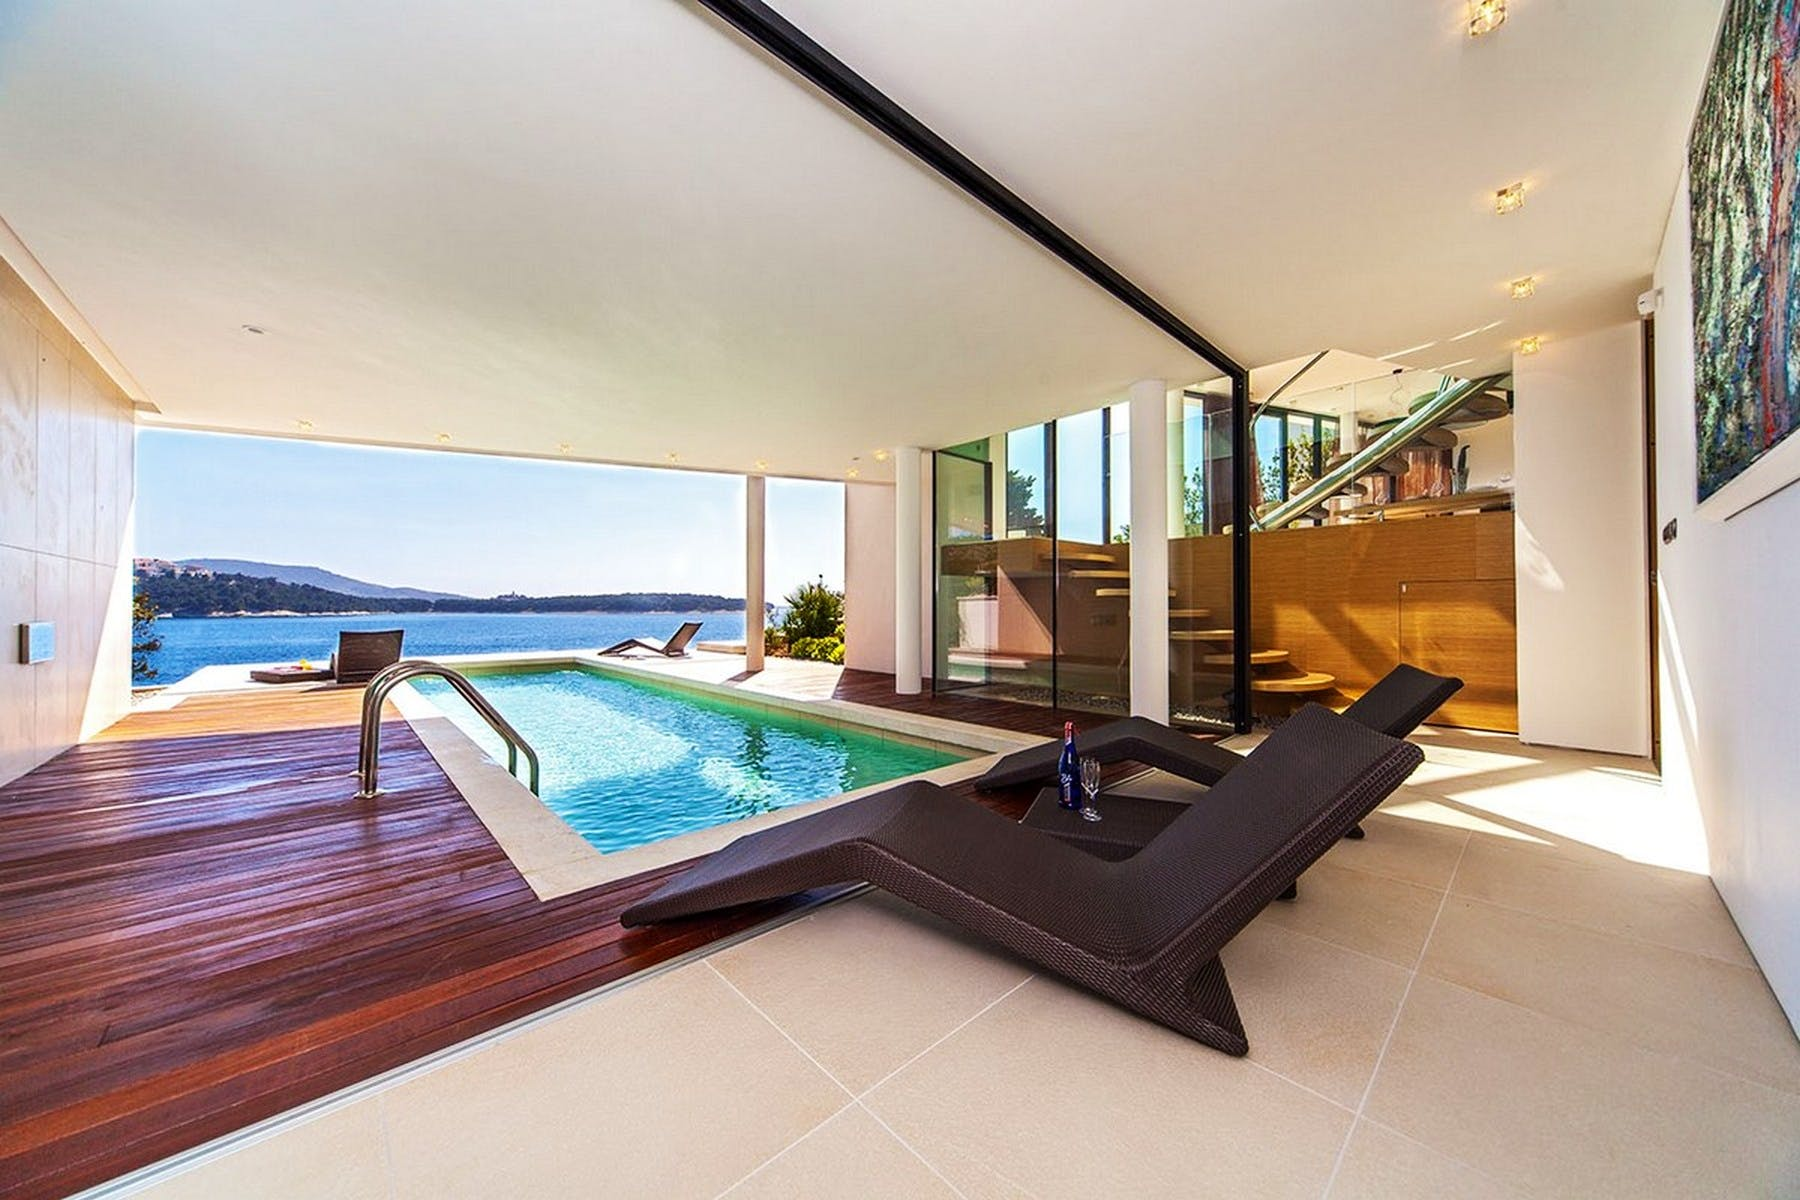 Indoor/outdoor pool with sea view